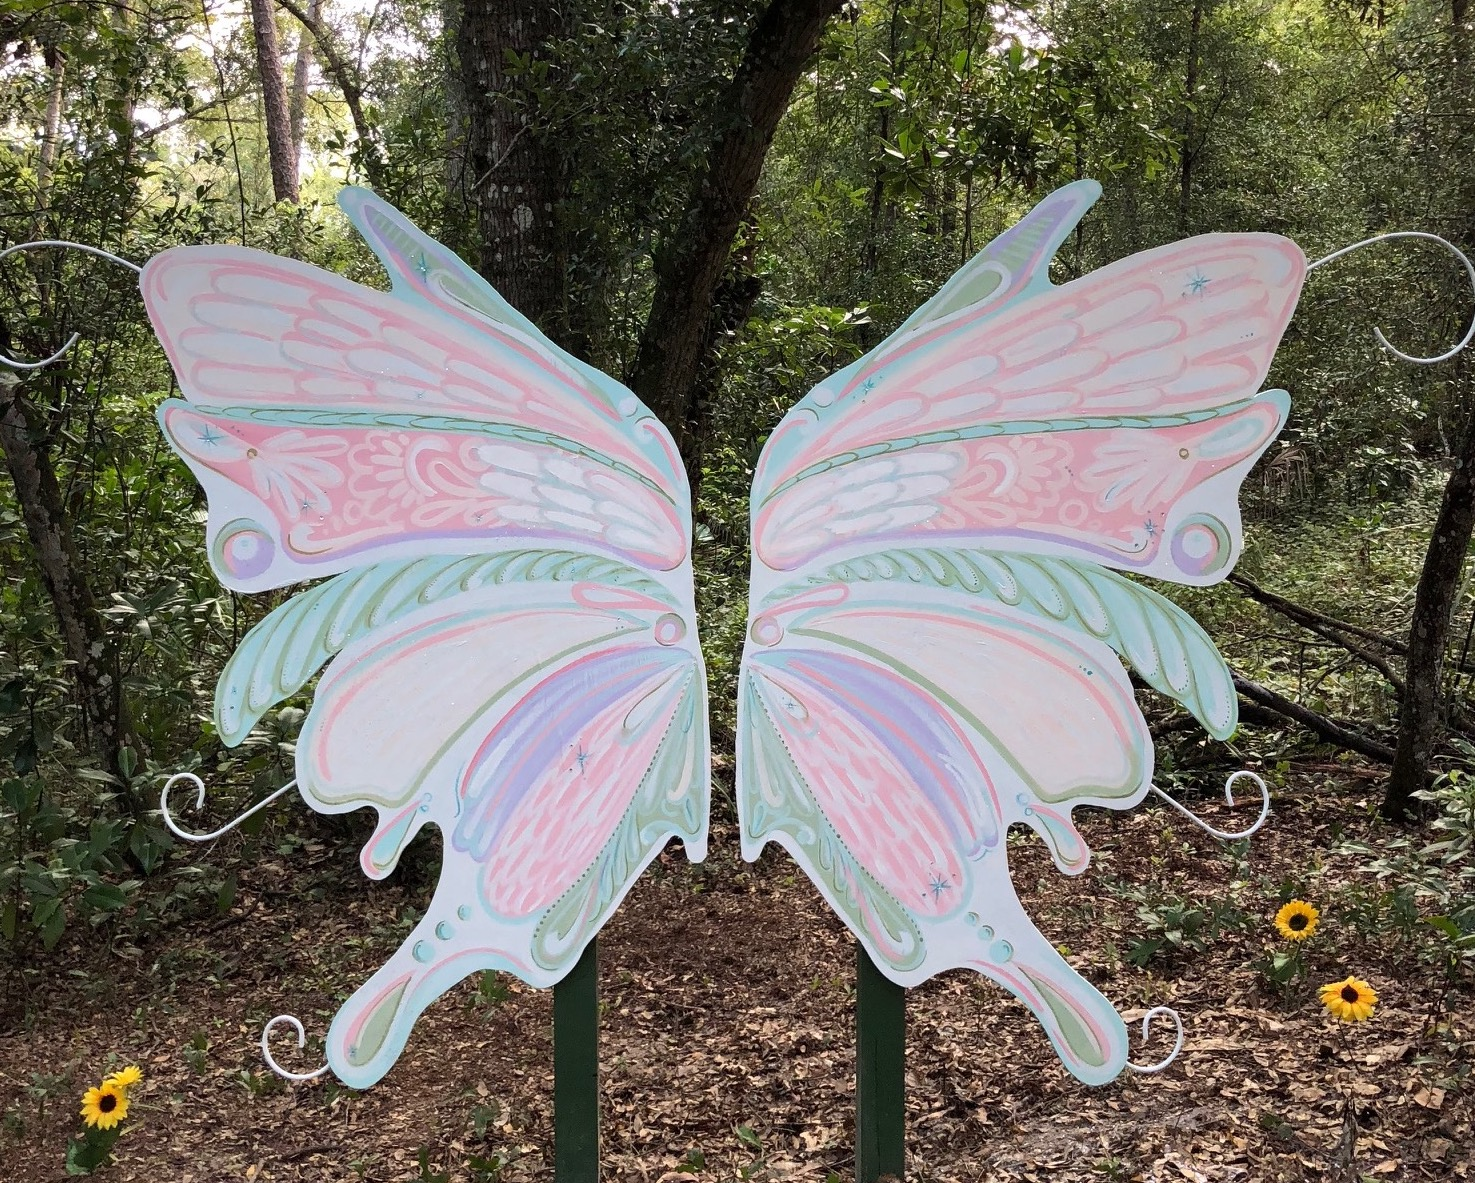 Fairy Trail Cassadaga Wings by Erica Group Deland florida